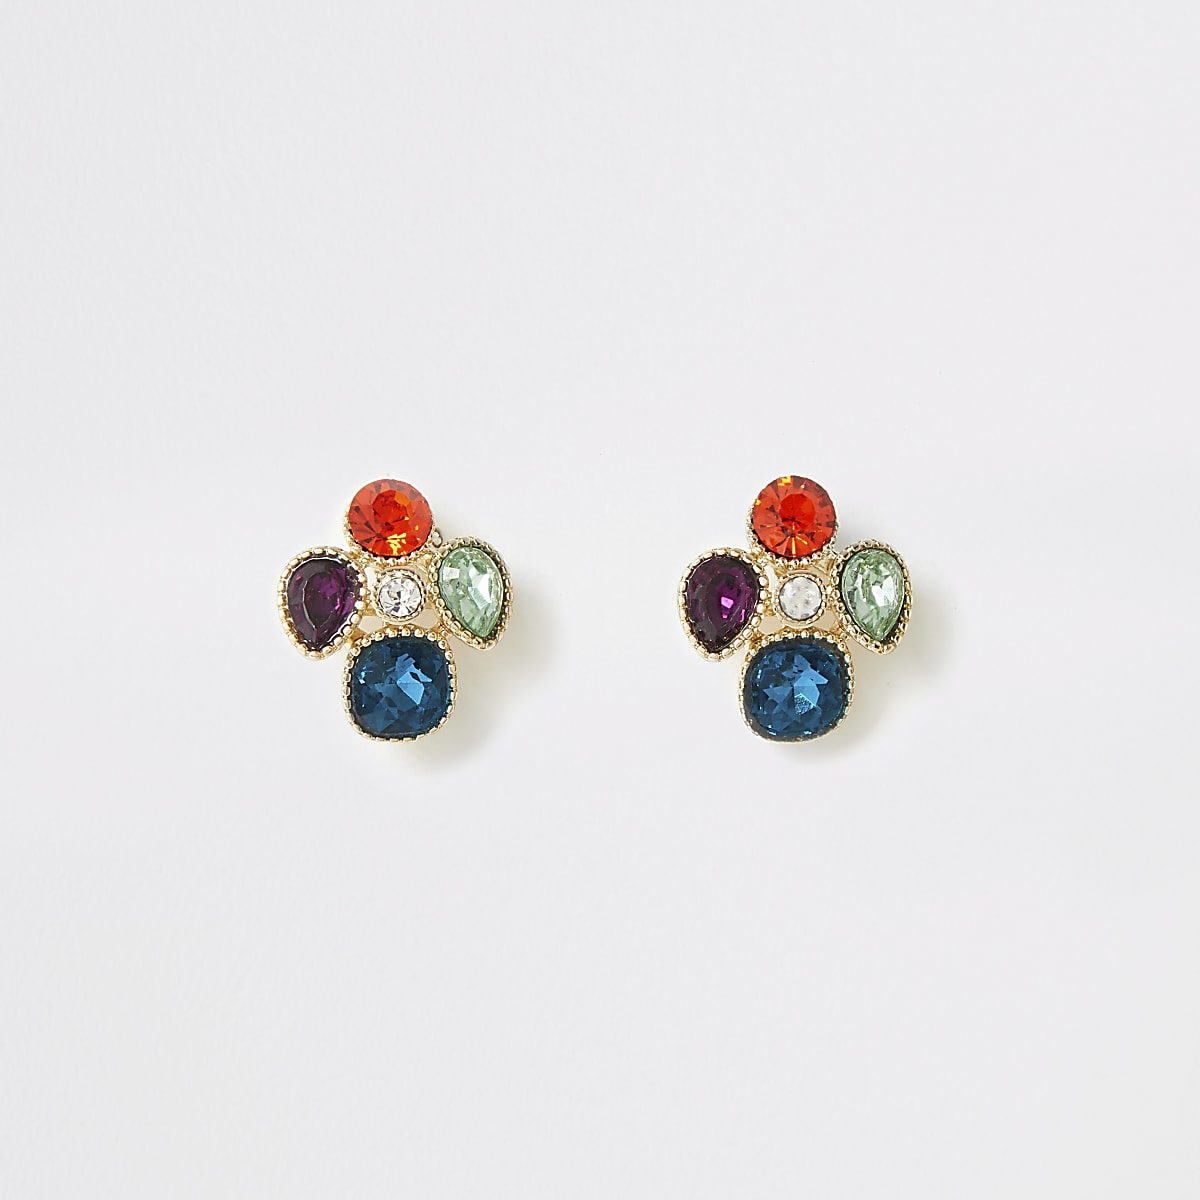 Gold color gem clustered stud earrings